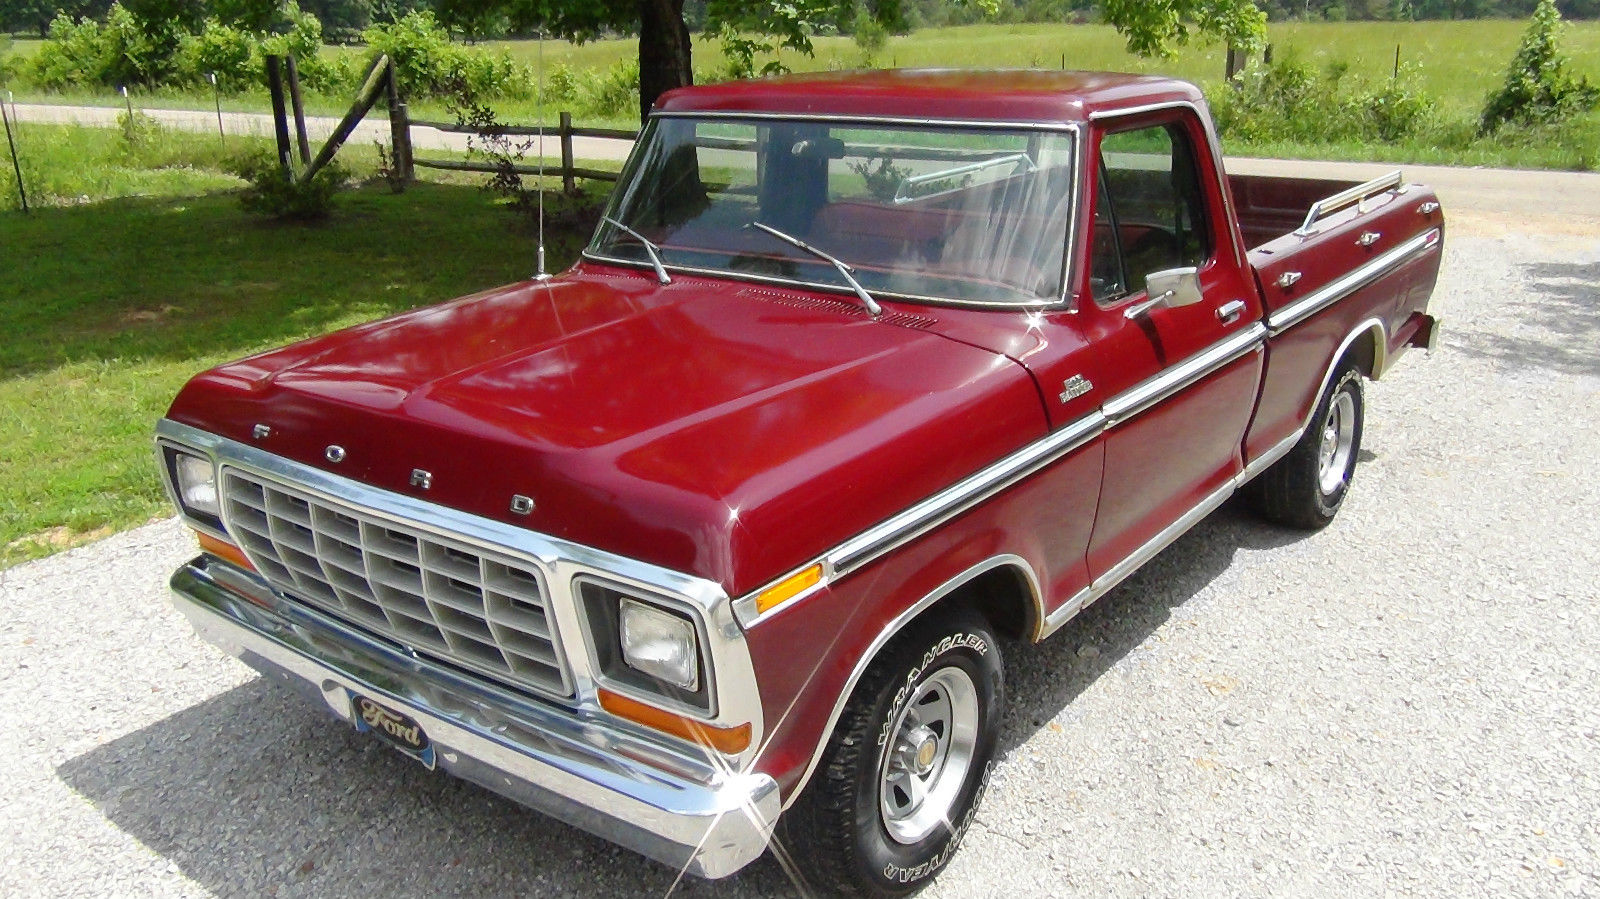 6 Door Ford Truck >> All American Classic Cars: 1979 Ford F100 Ranger Pickup Truck